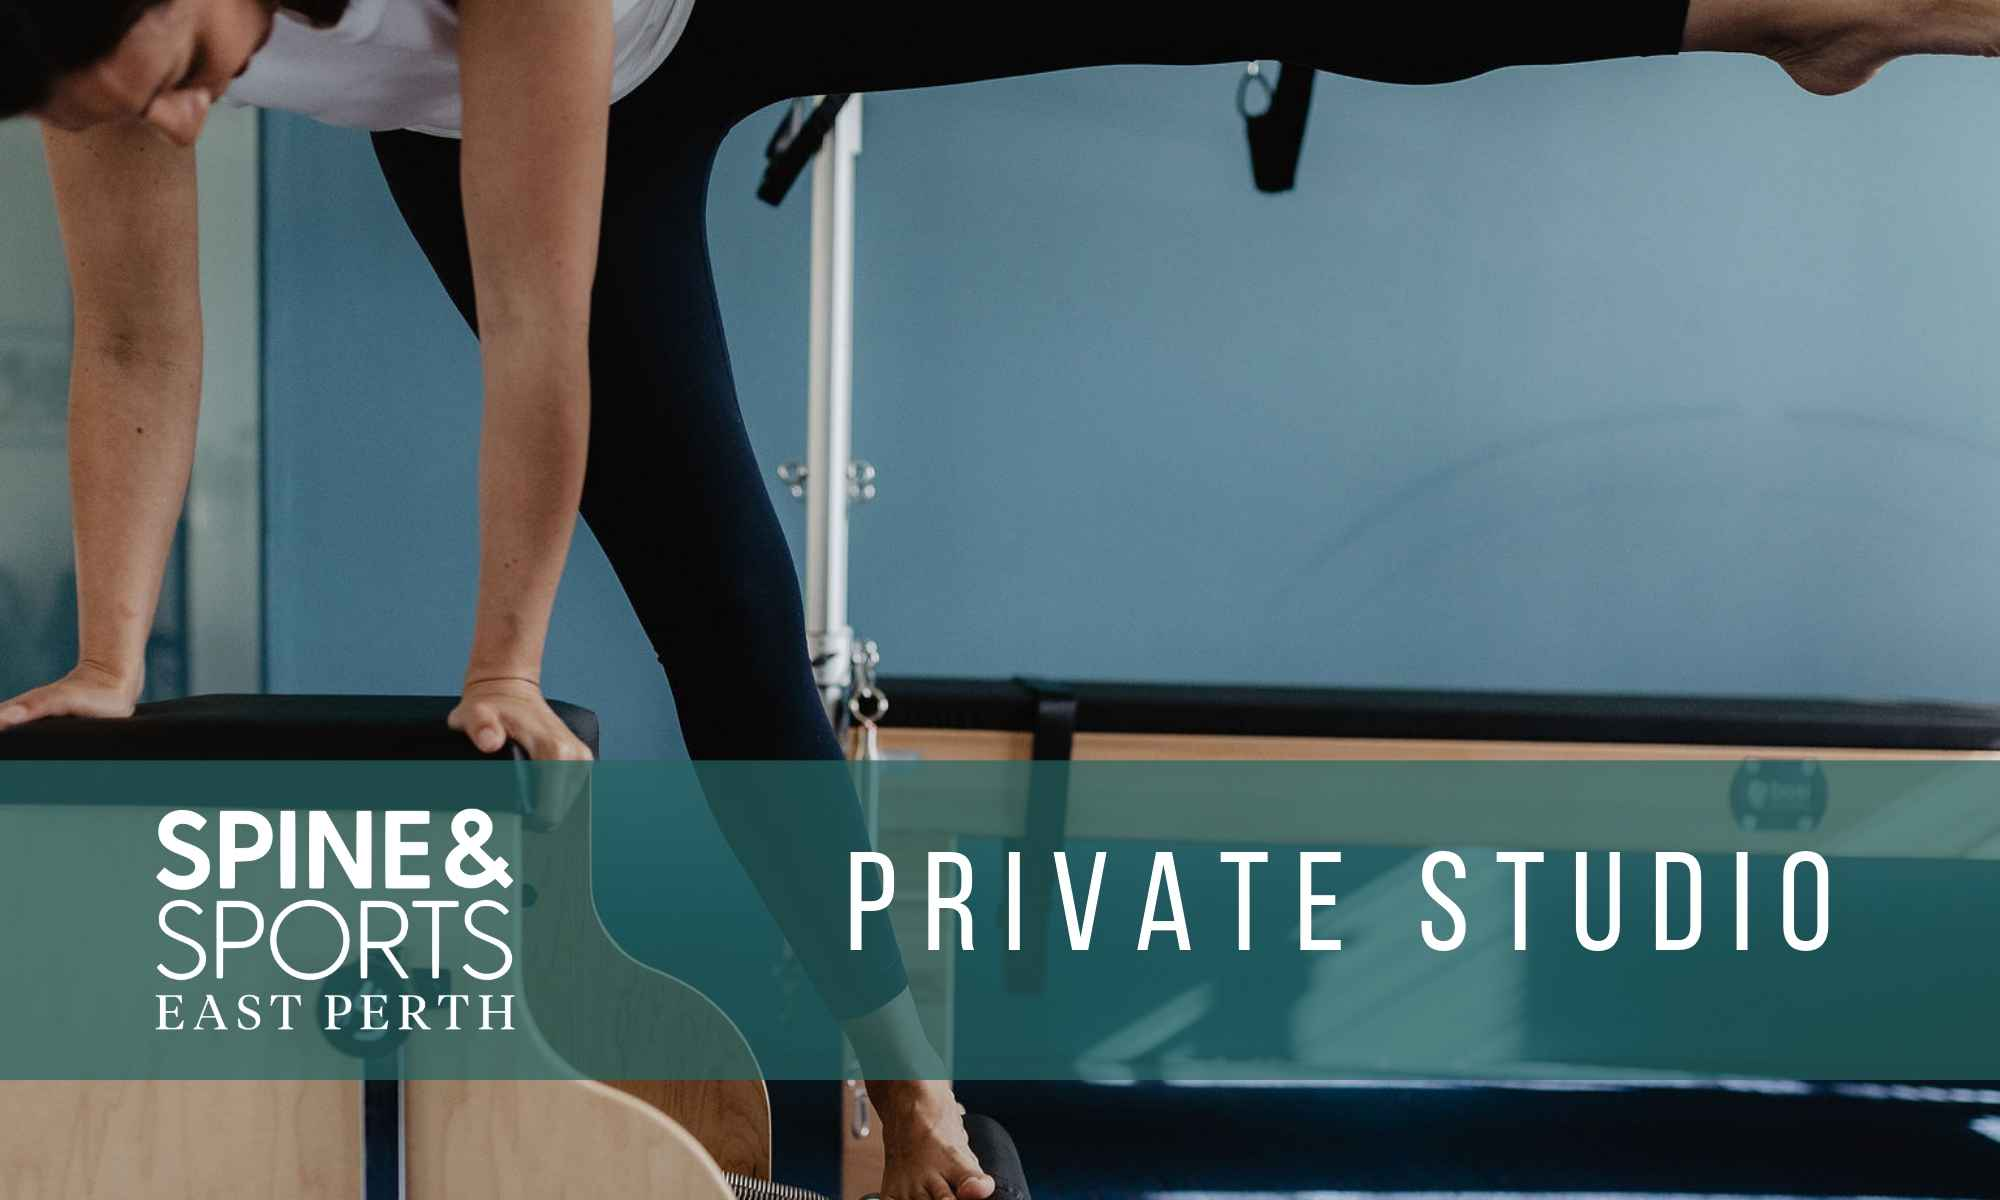 East Perth Private Studio Pilates at Spine & Sports Centre.jpg